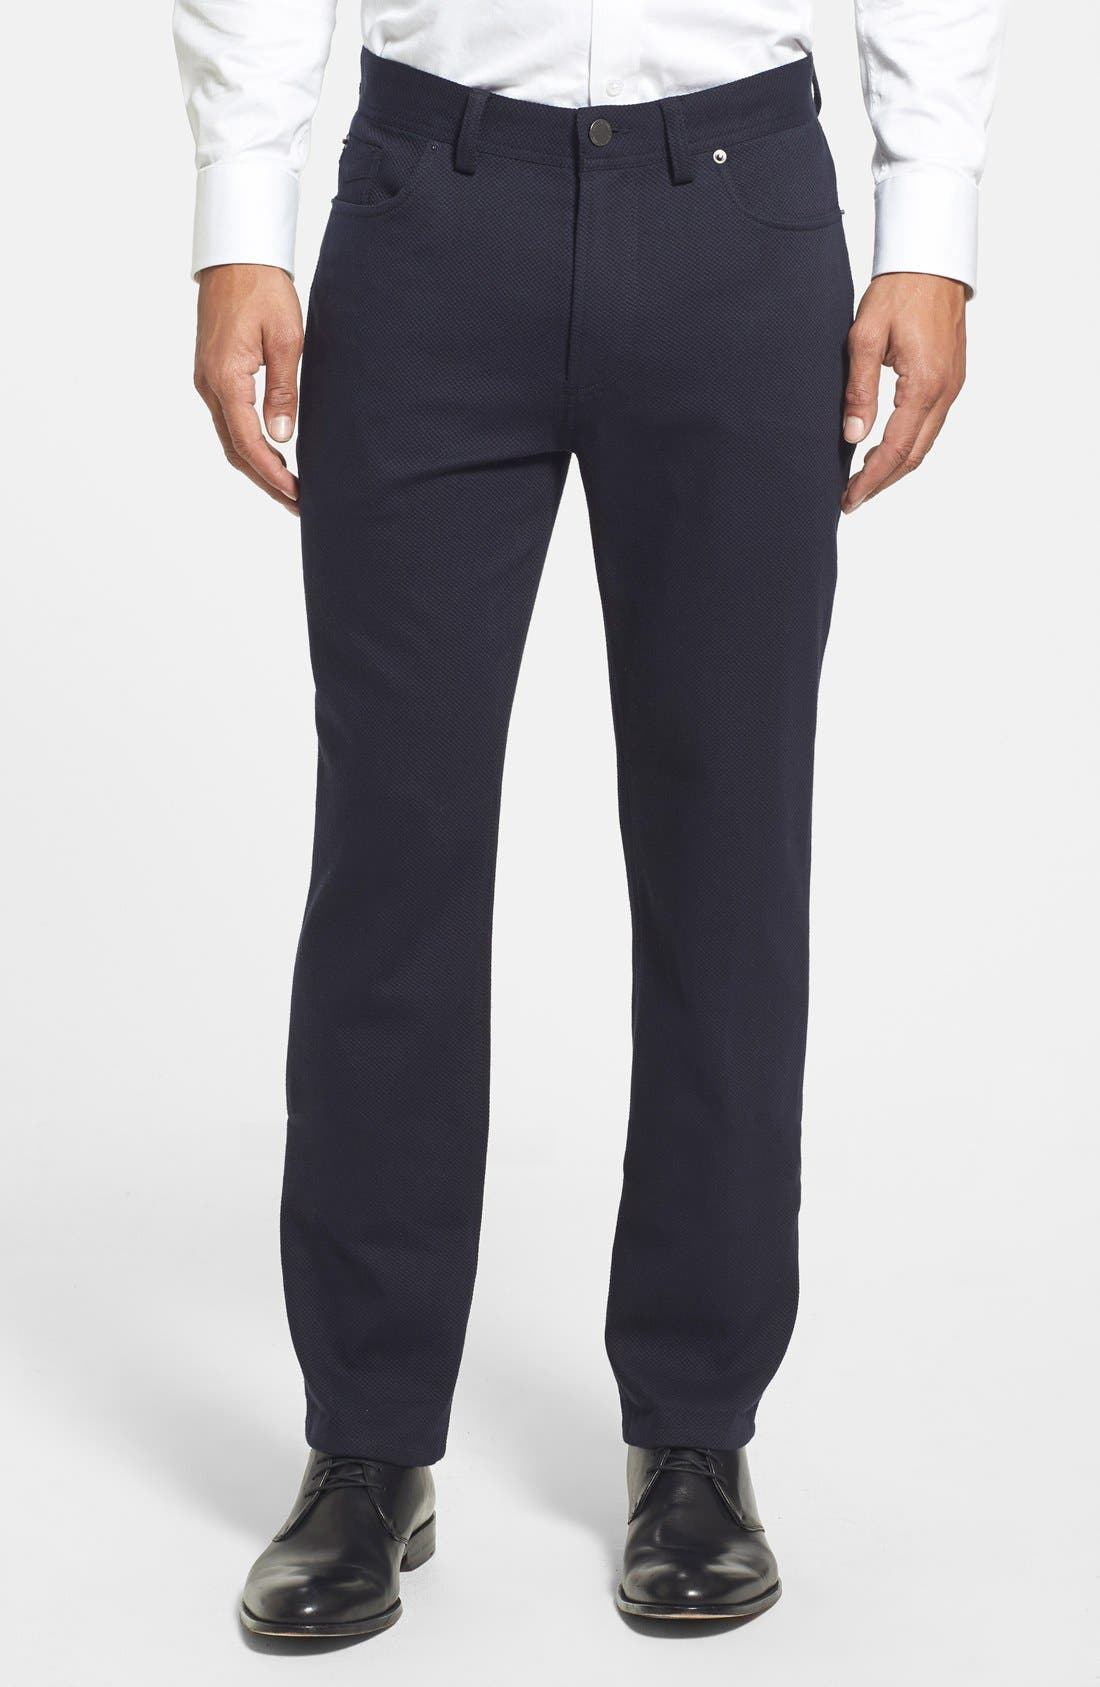 Alternate Image 1 Selected - Vince Camuto Straight Leg Five Pocket Stretch Pants